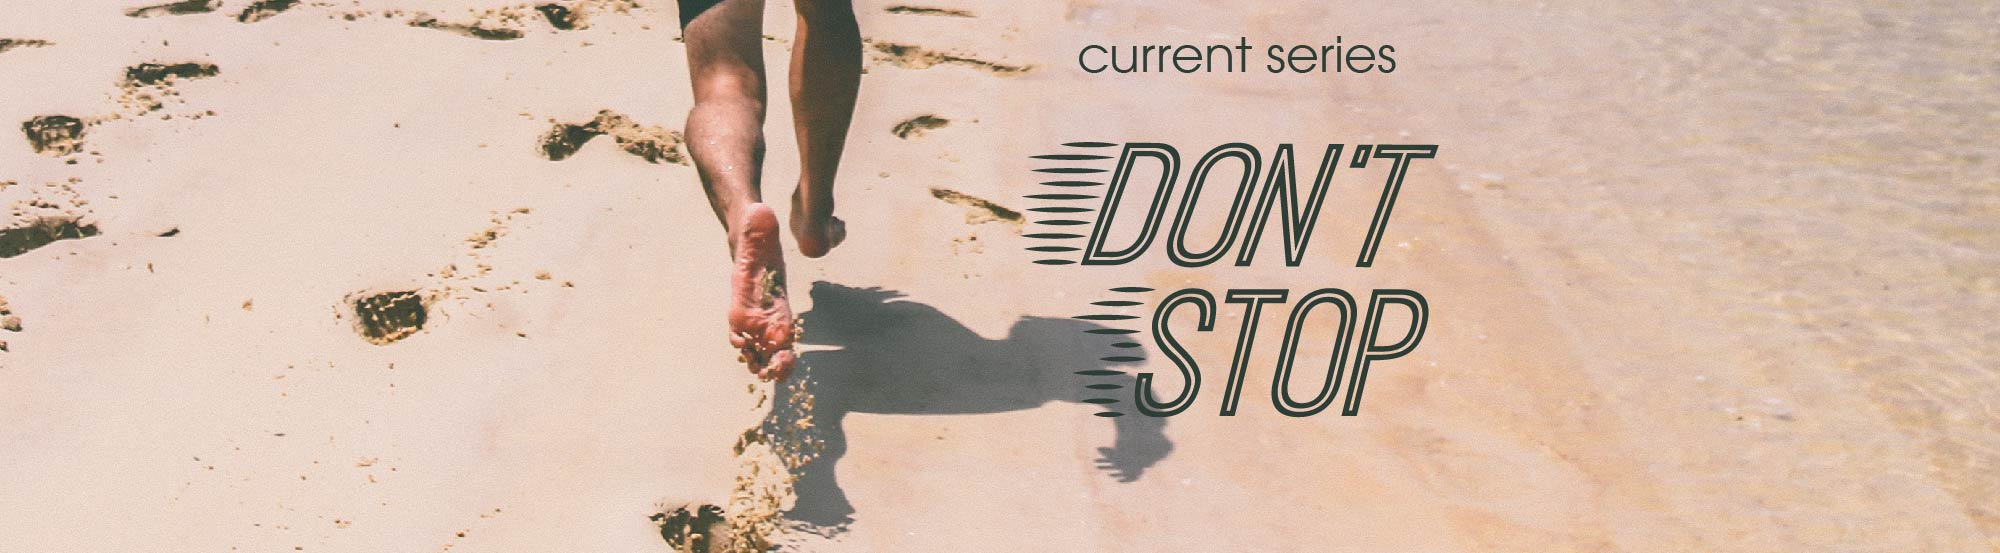 DontStop-current_Web